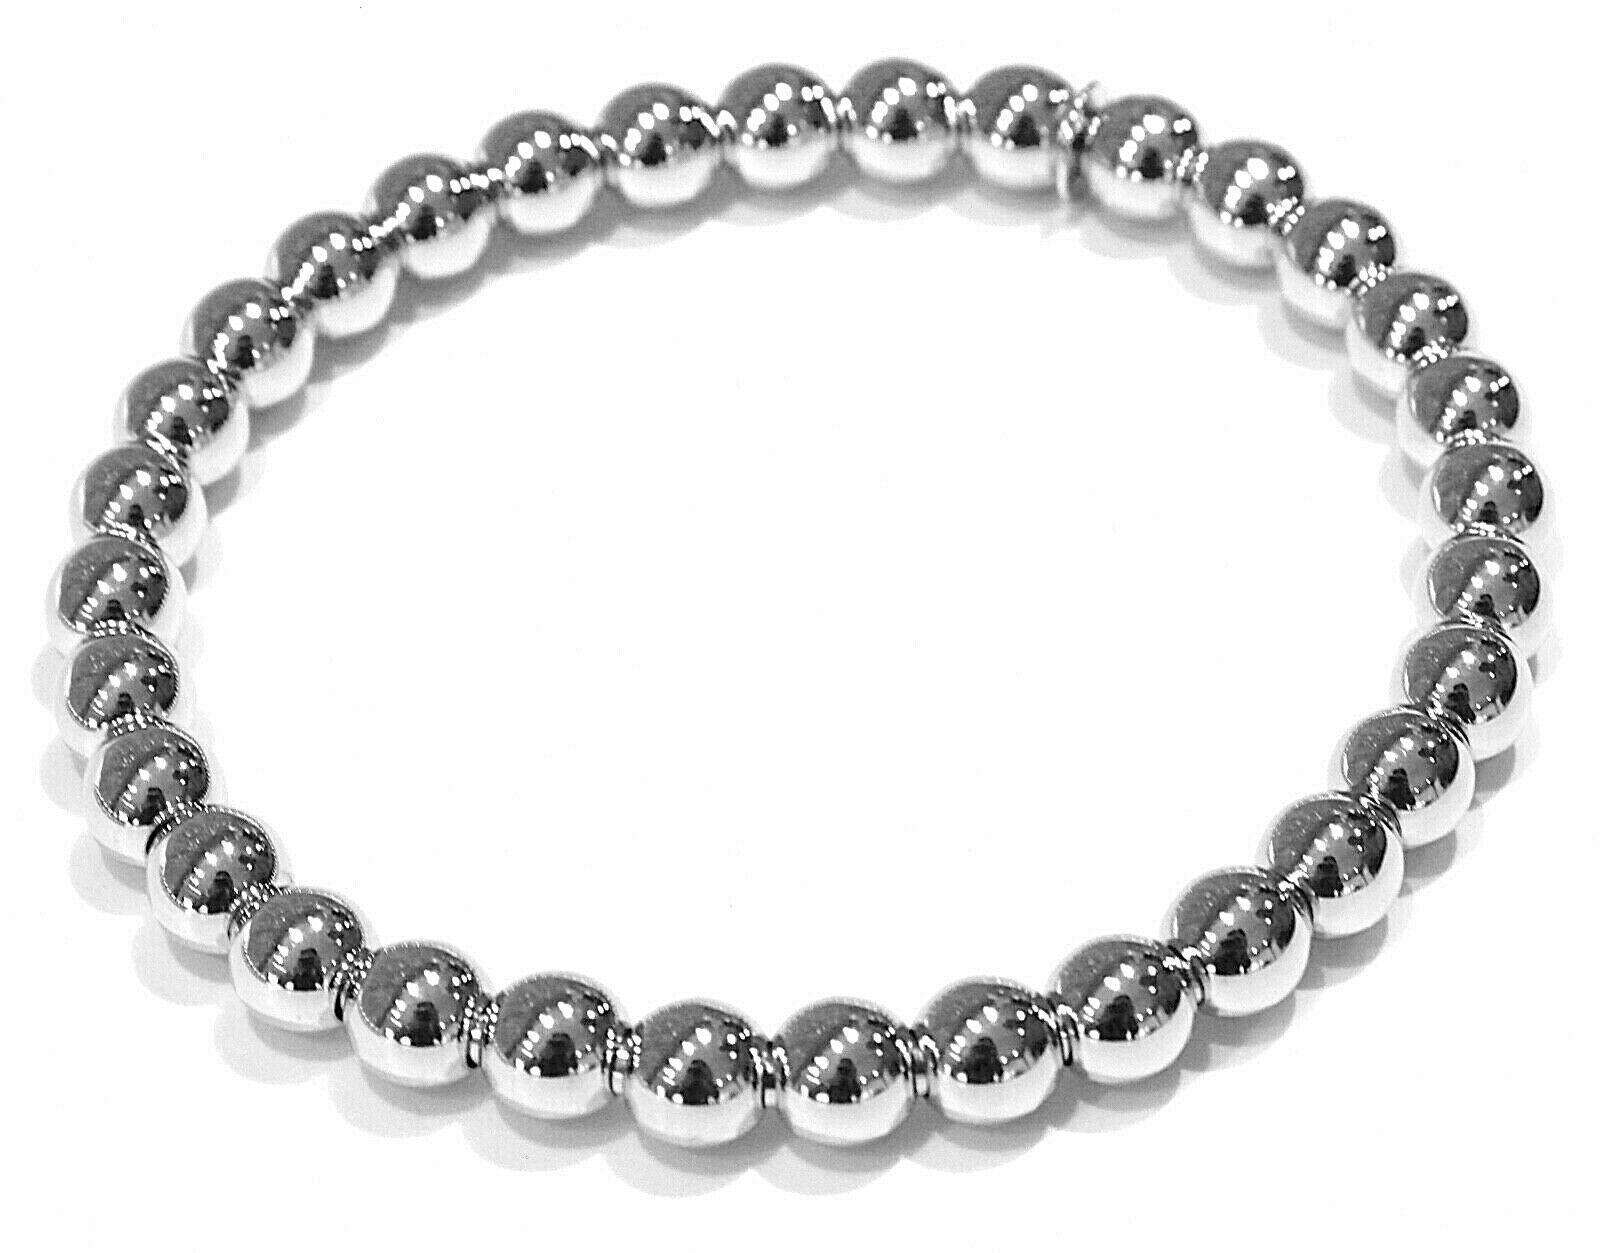 18K WHITE GOLD BRACELET, SEMIRIGID, ELASTIC, BIG 6 MM SMOOTH BALLS SPHERES